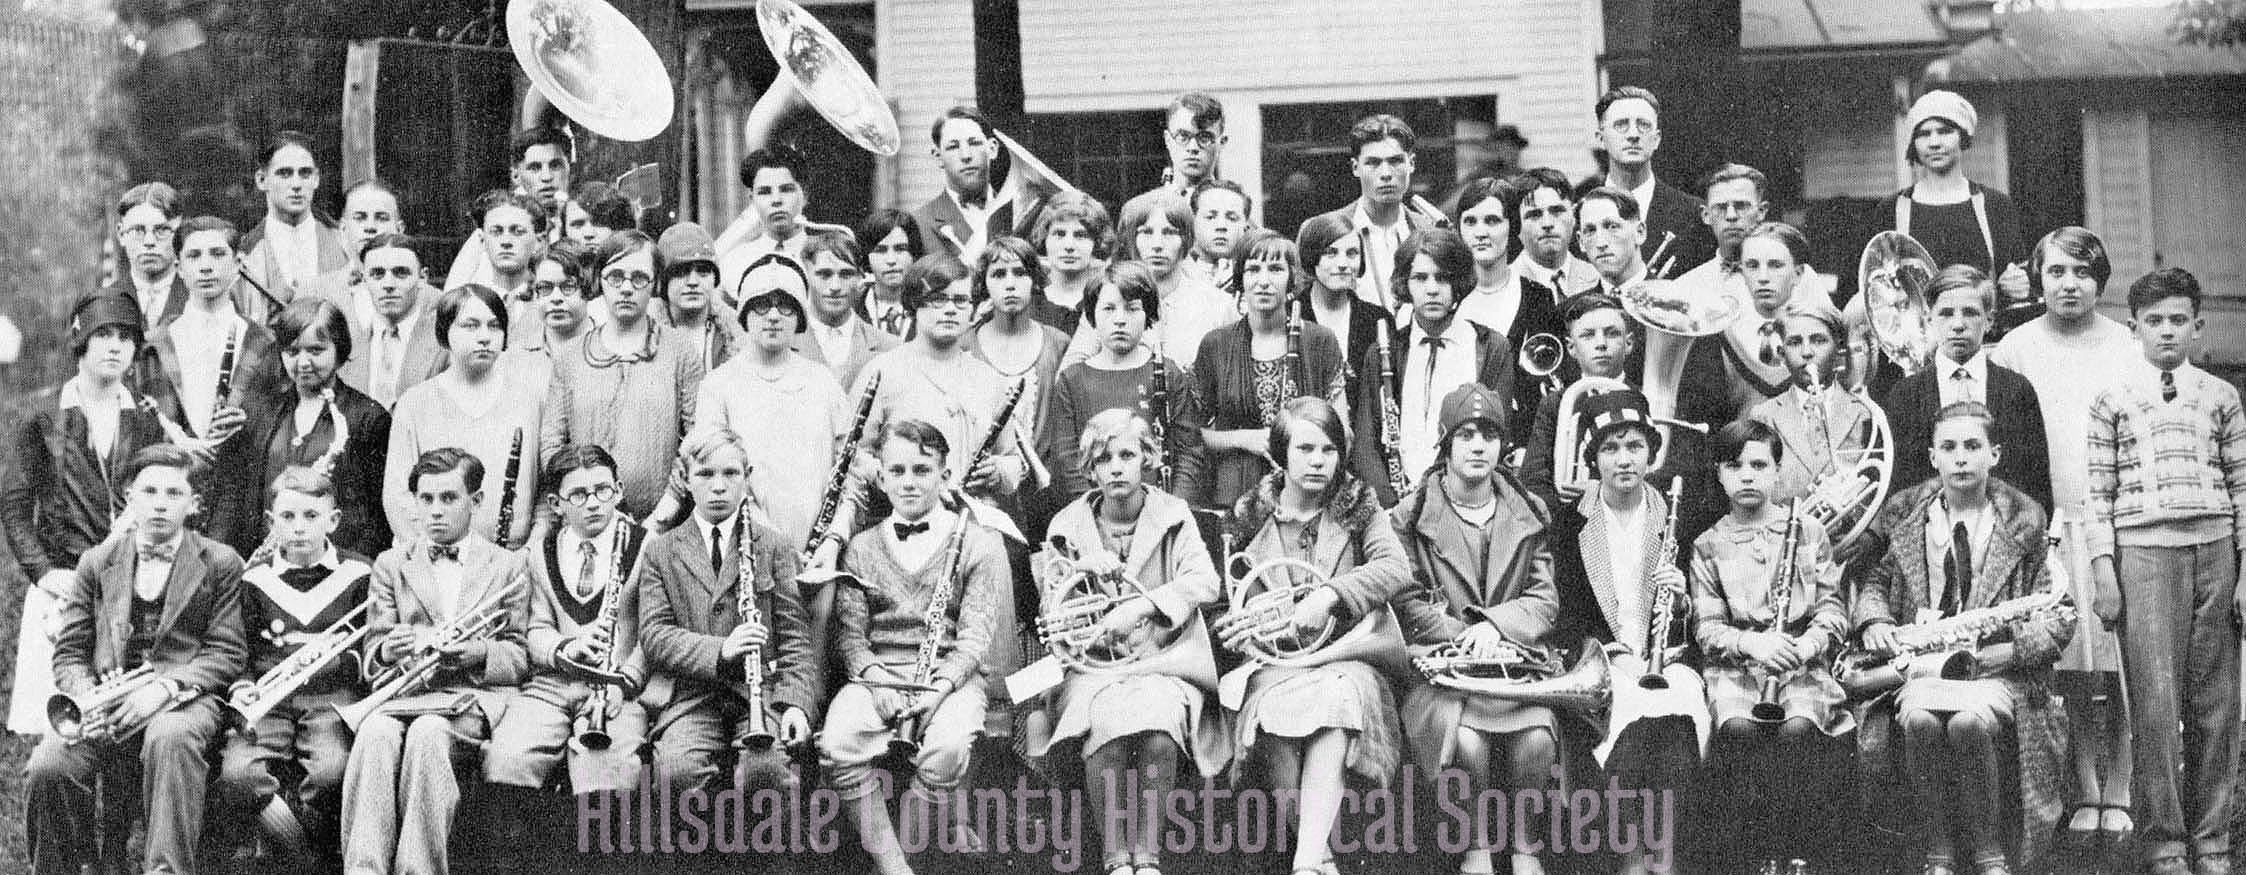 The 1928 Frontier High School Band at the side of the fair office (which is now the hillsdale County Historical Society museum)